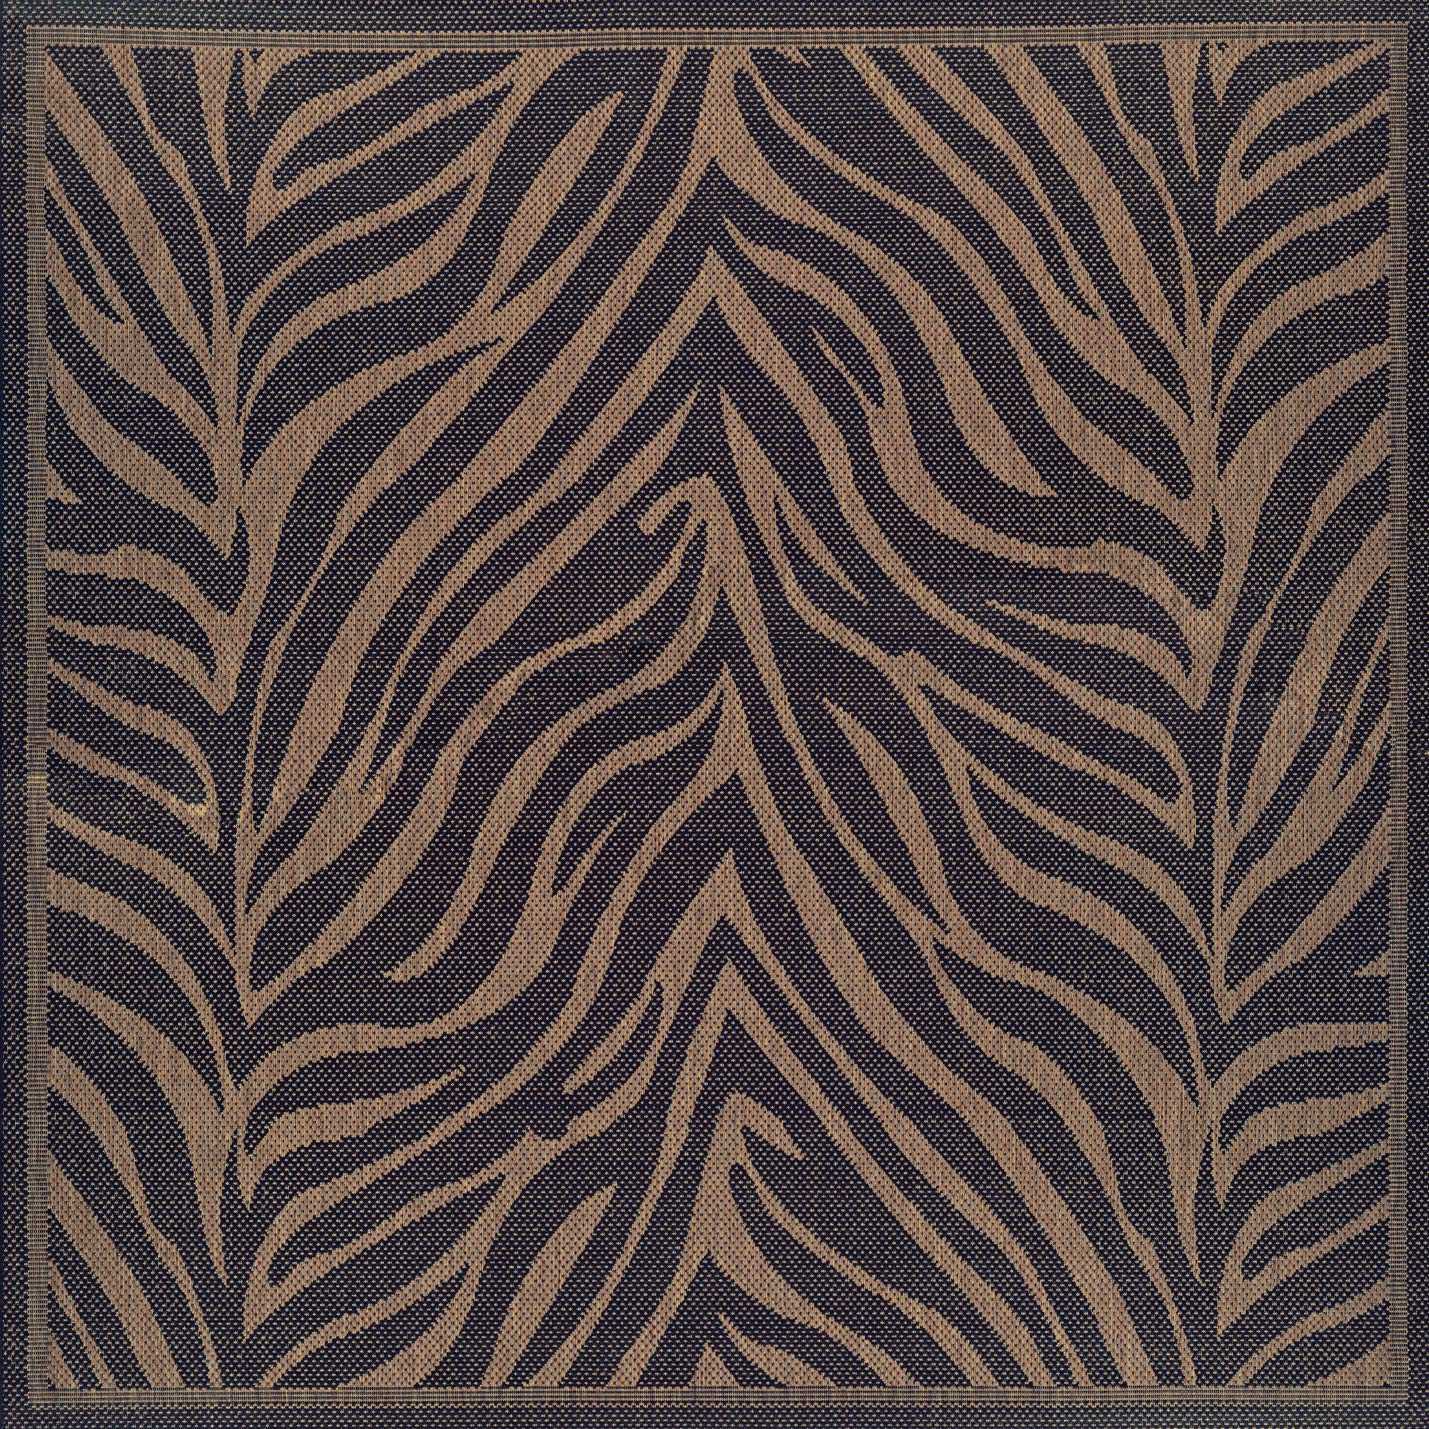 Couristan 1514 0121 Recife Zebra Black Cocoa Rug, 7-Feet 6-Inch Square